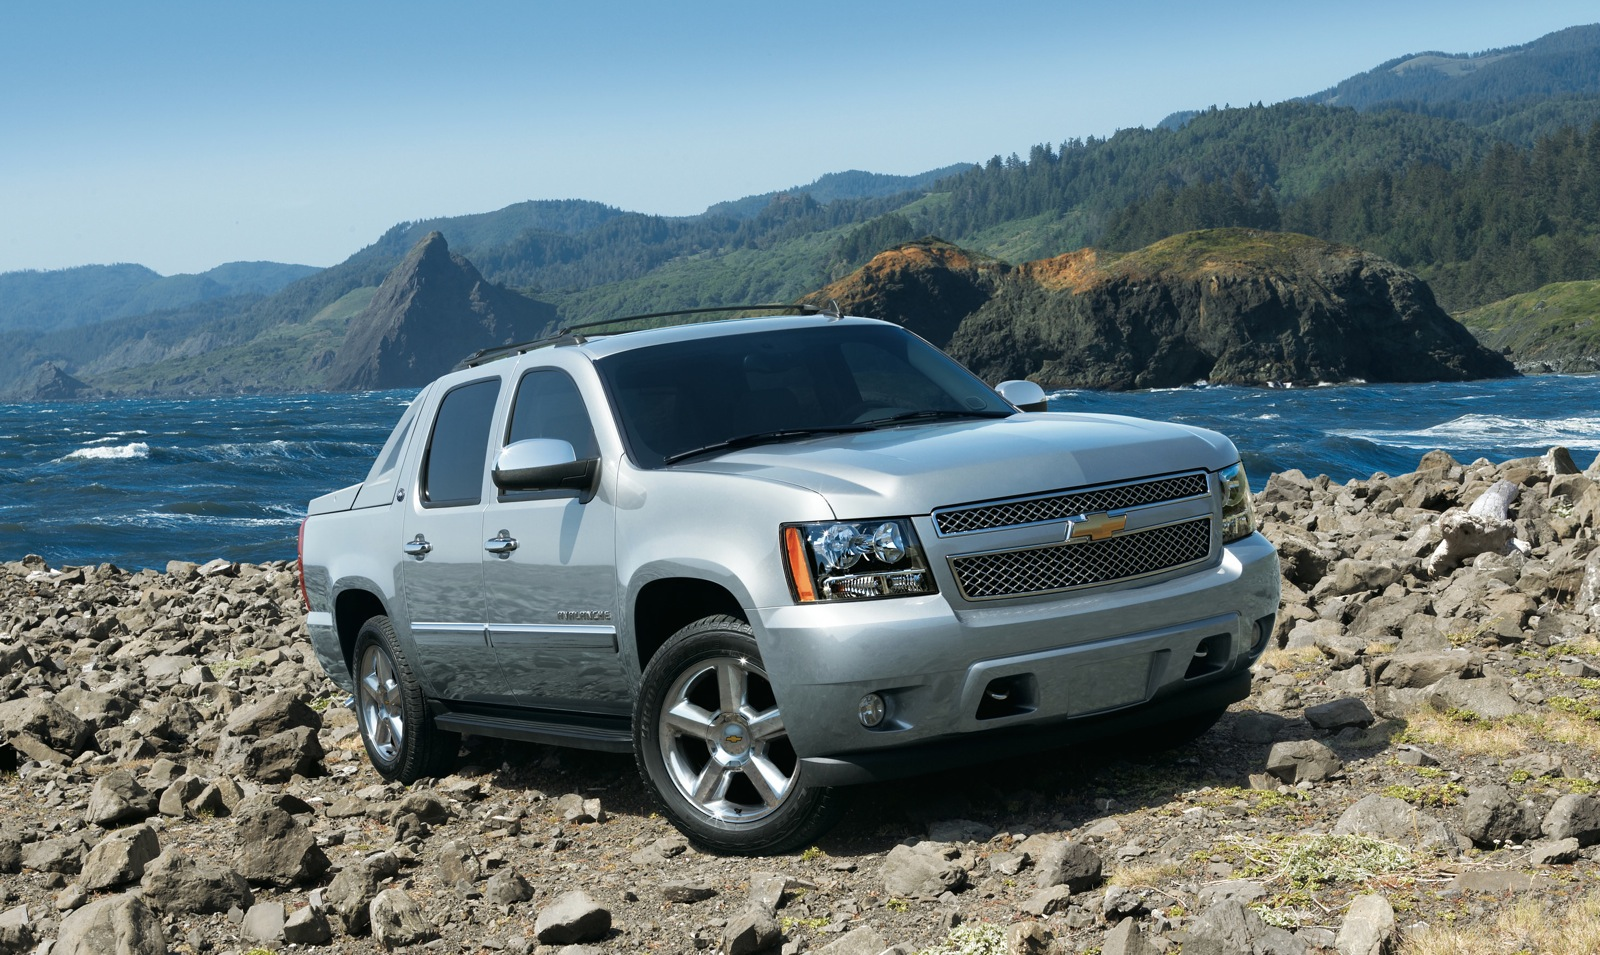 new and used chevrolet avalanche chevy prices photos reviews specs the car connection. Black Bedroom Furniture Sets. Home Design Ideas